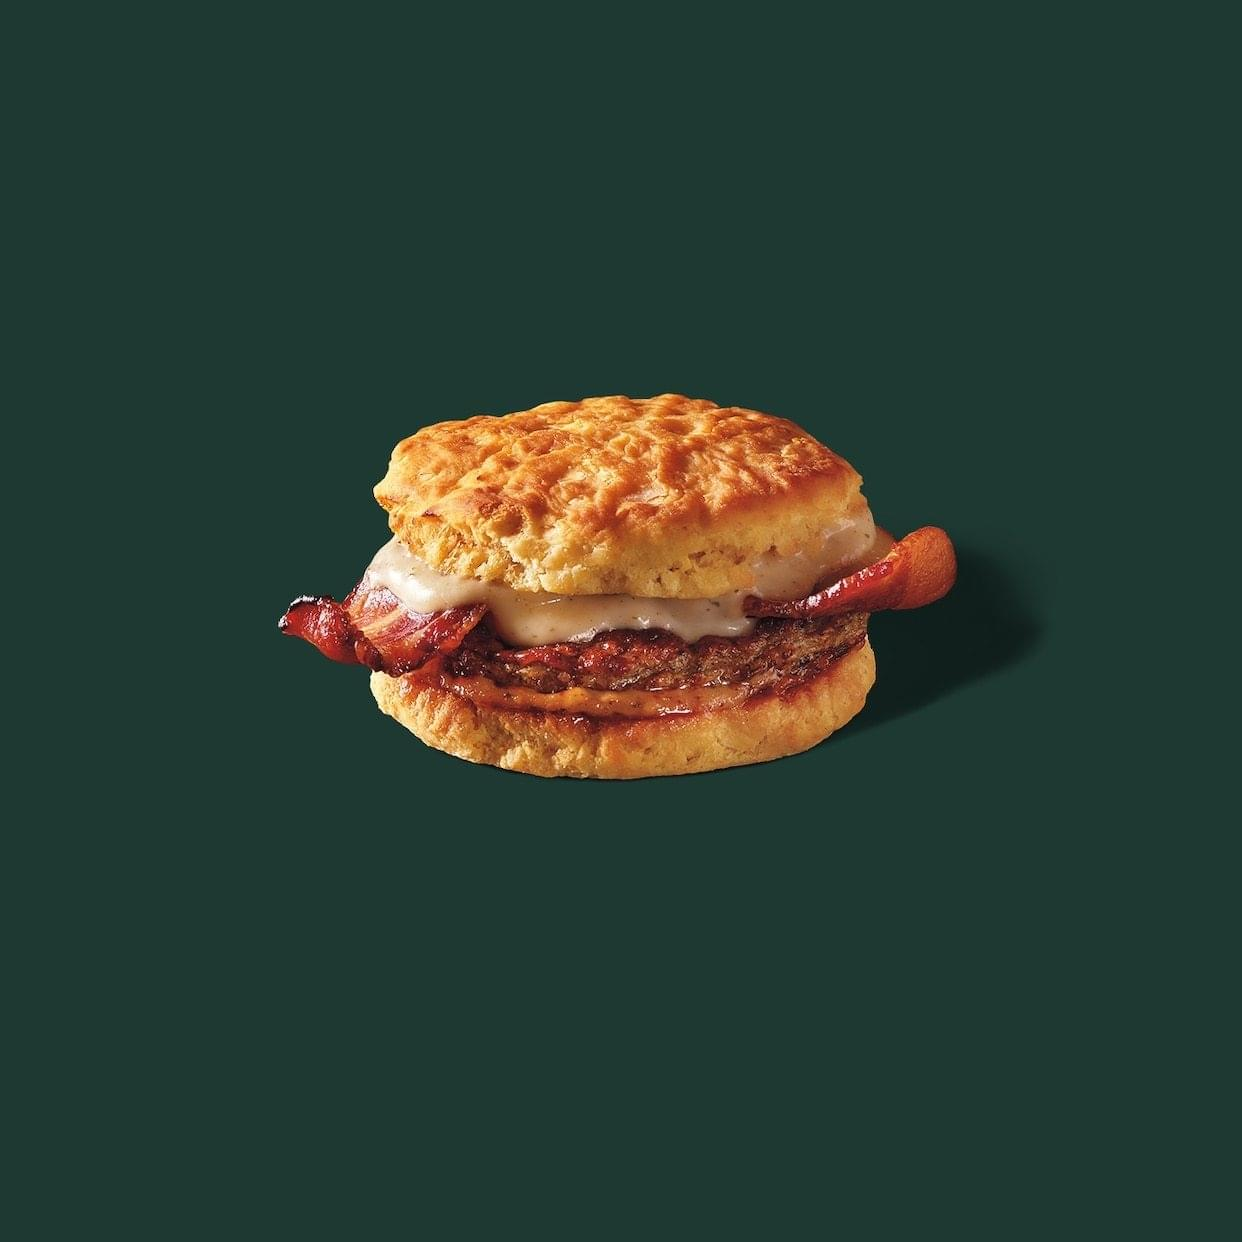 Starbucks Chicken Sausage & Bacon Biscuit Nutrition Facts